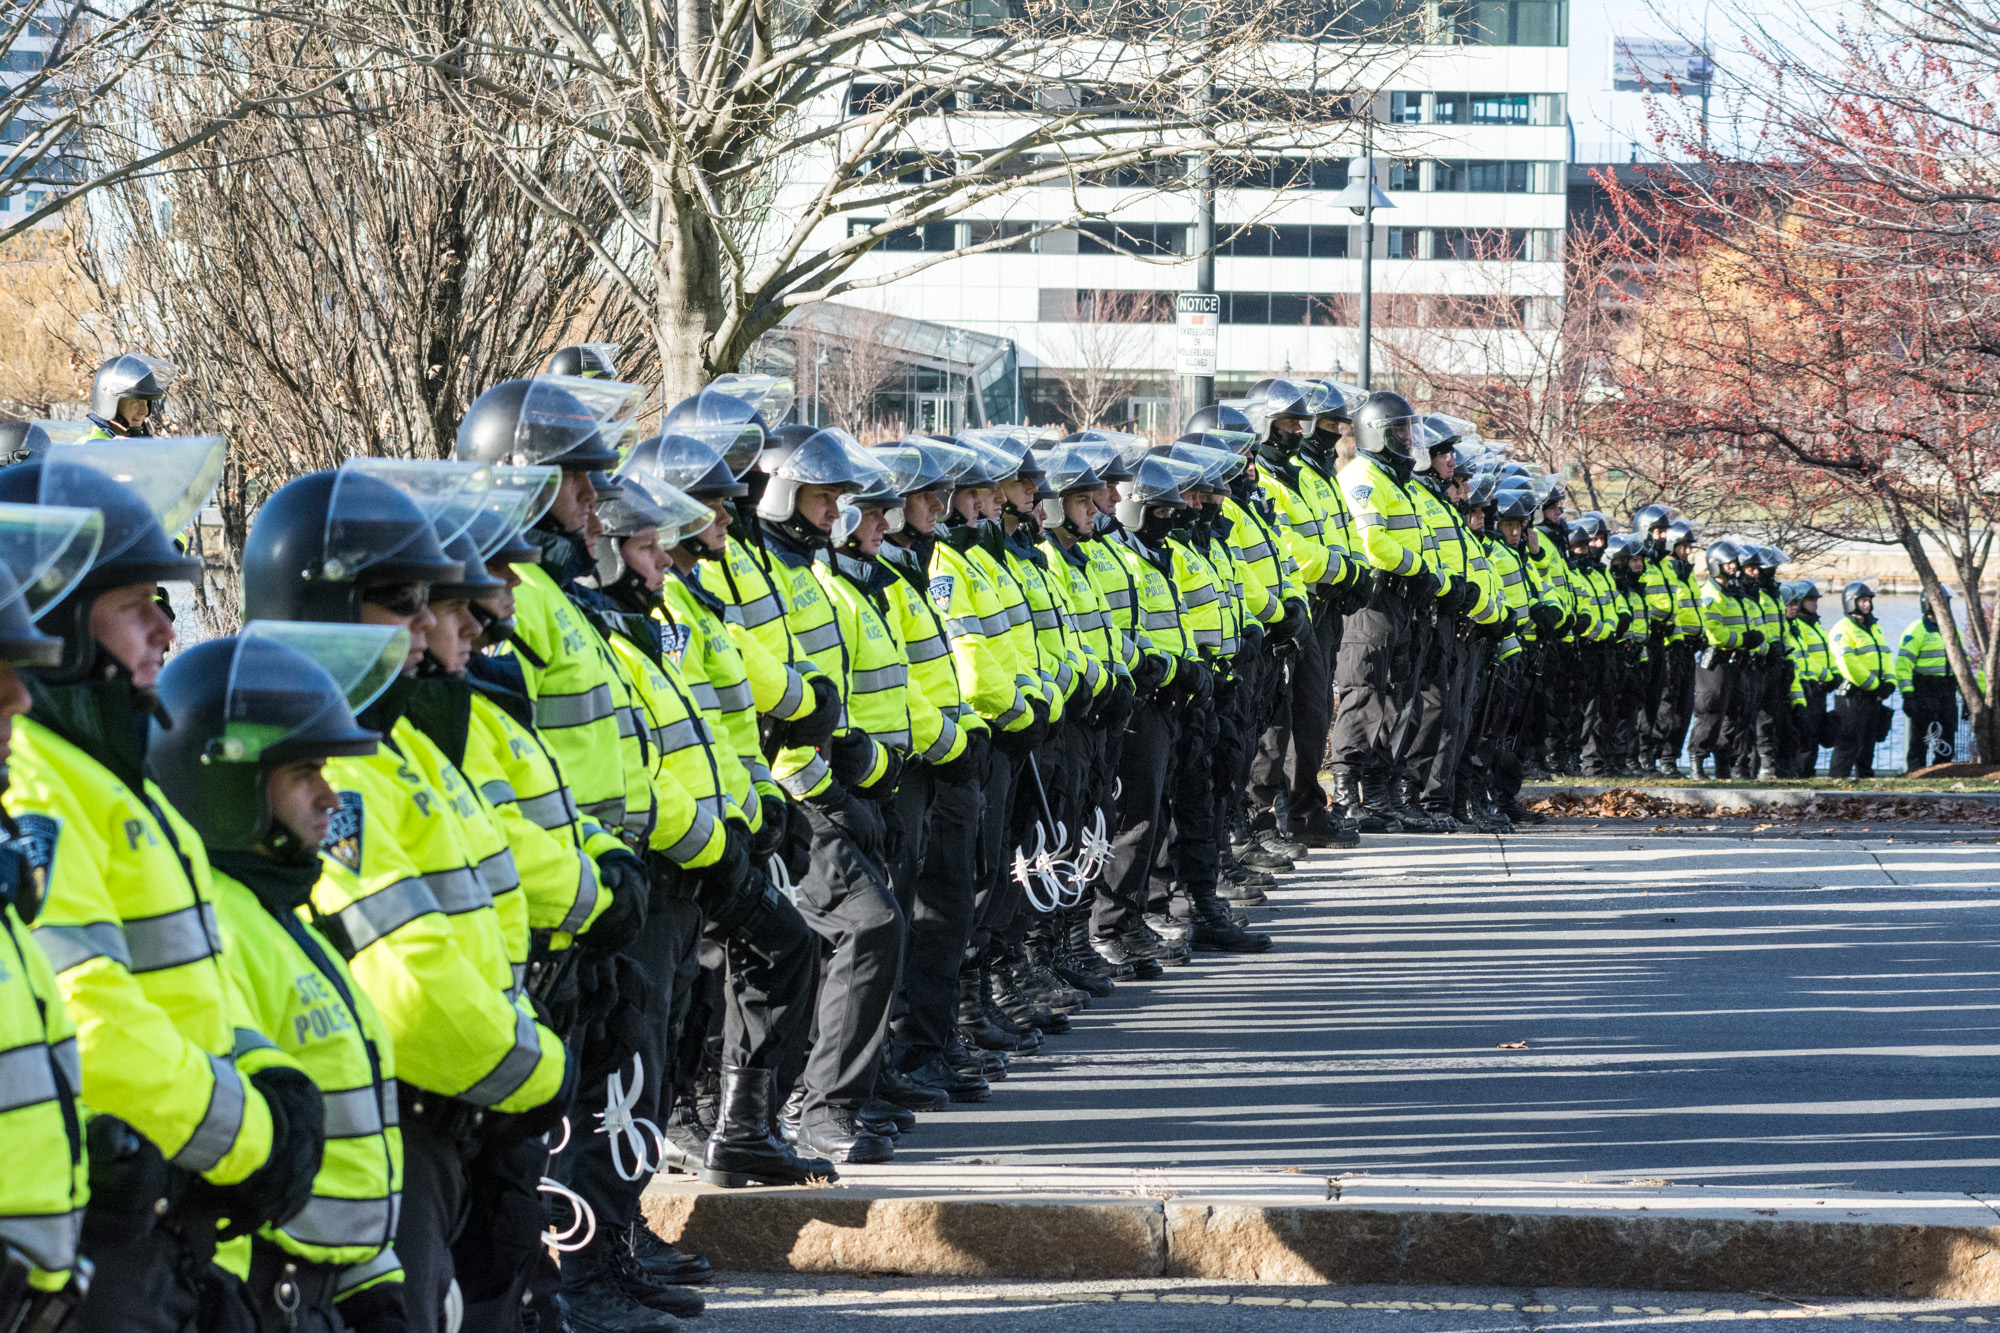 A line of police officers blocked both sides of the street and the adjacent park